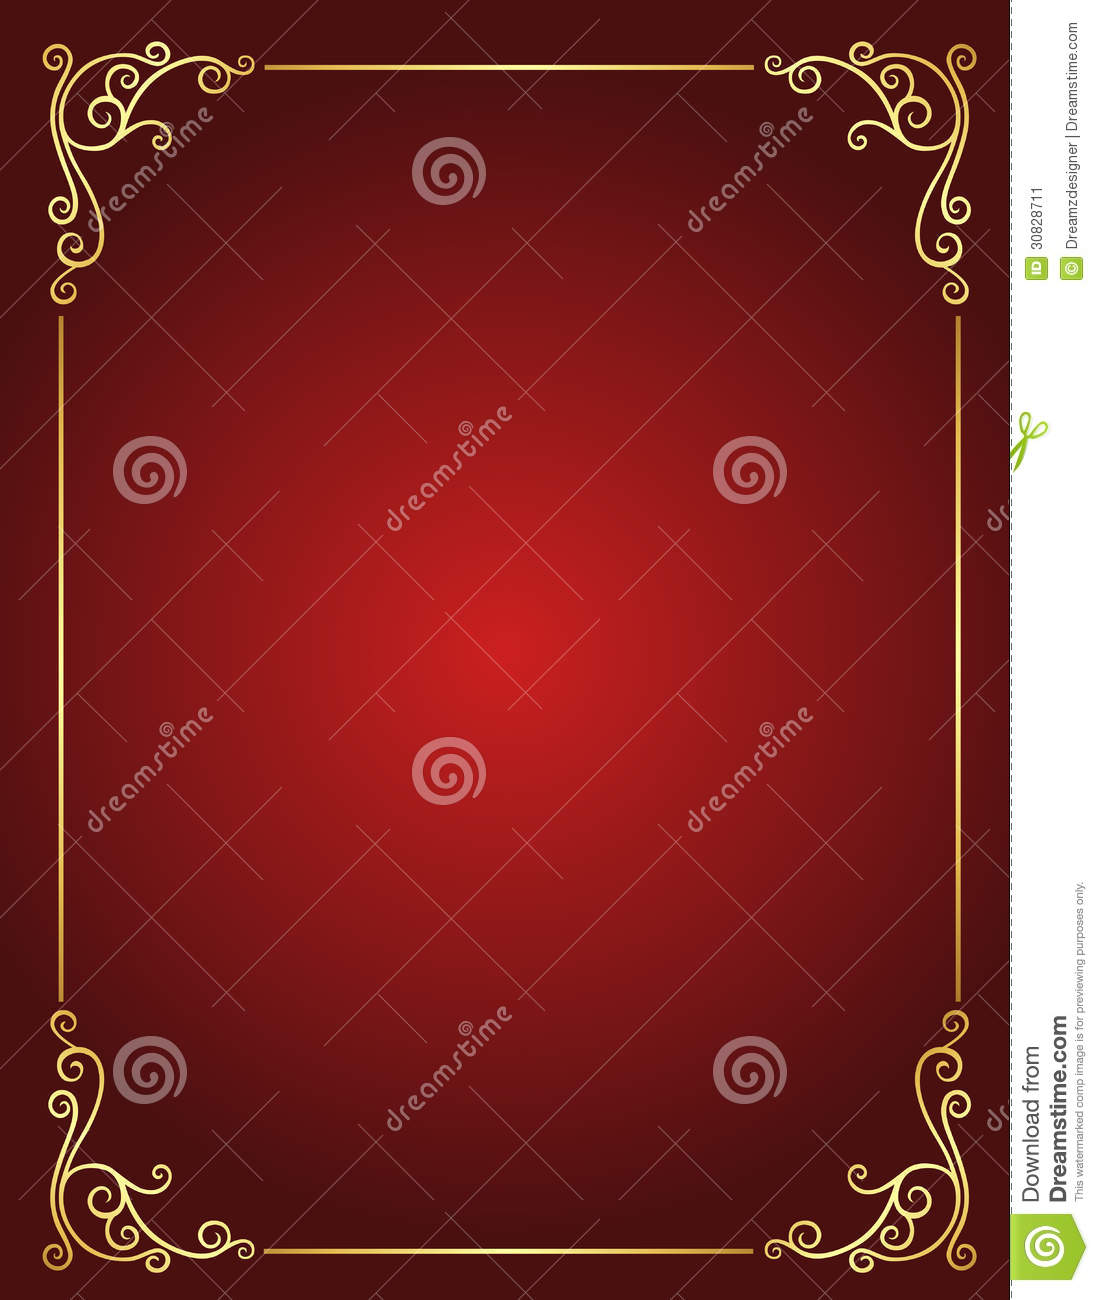 Wedding Invitation Border In Red And Gold Stock Vector ...